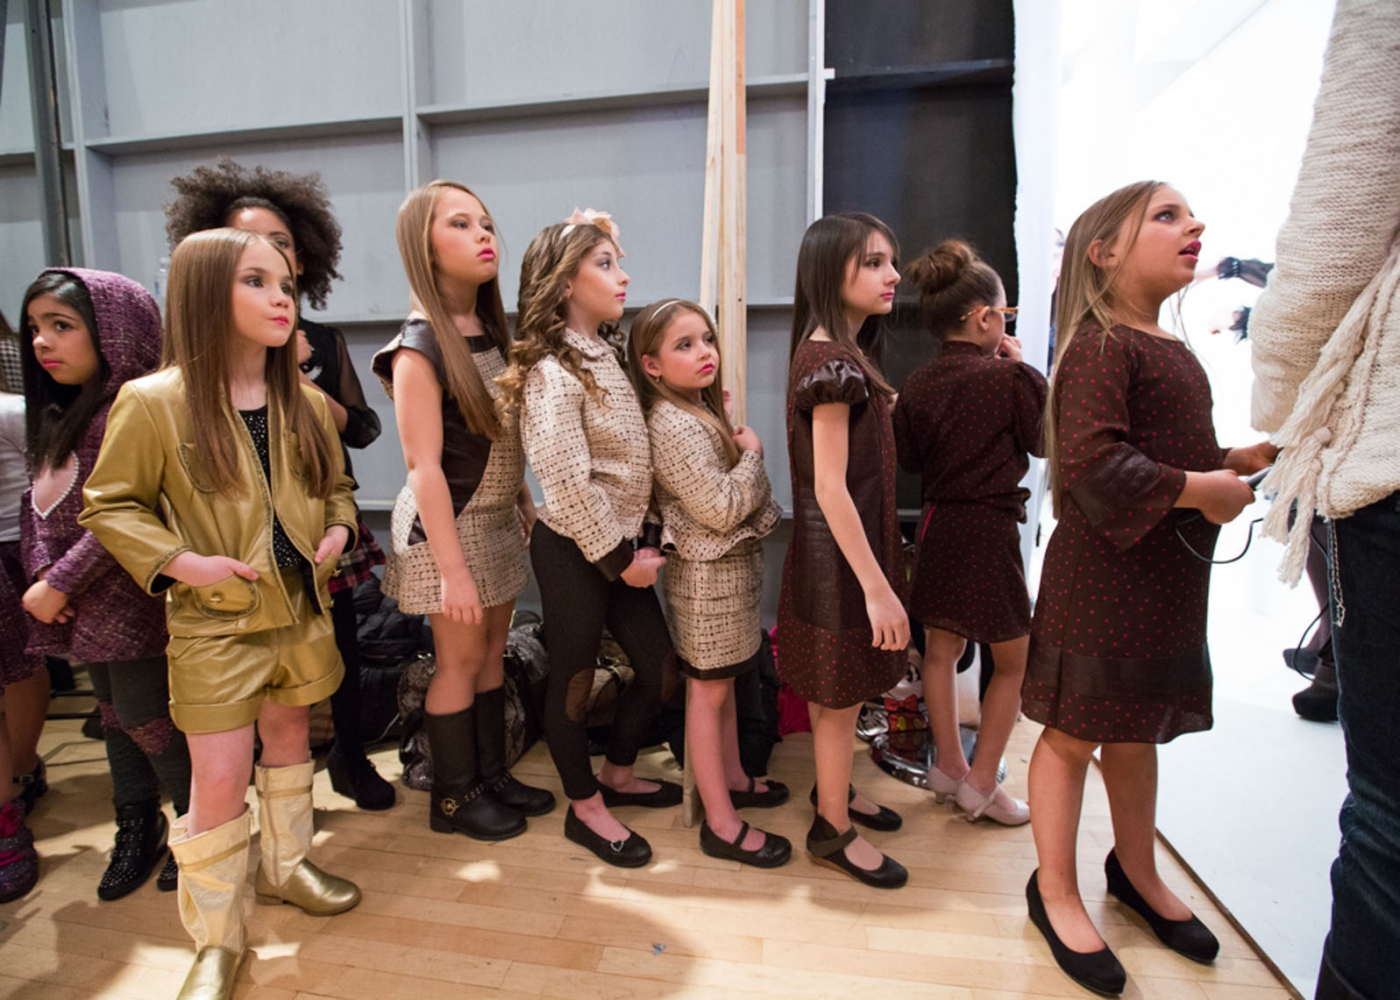 Isabella and fellow models wait backstage during the debut of her clothing line Bound by the Crown at New York Fashion Week For Nido Magazine